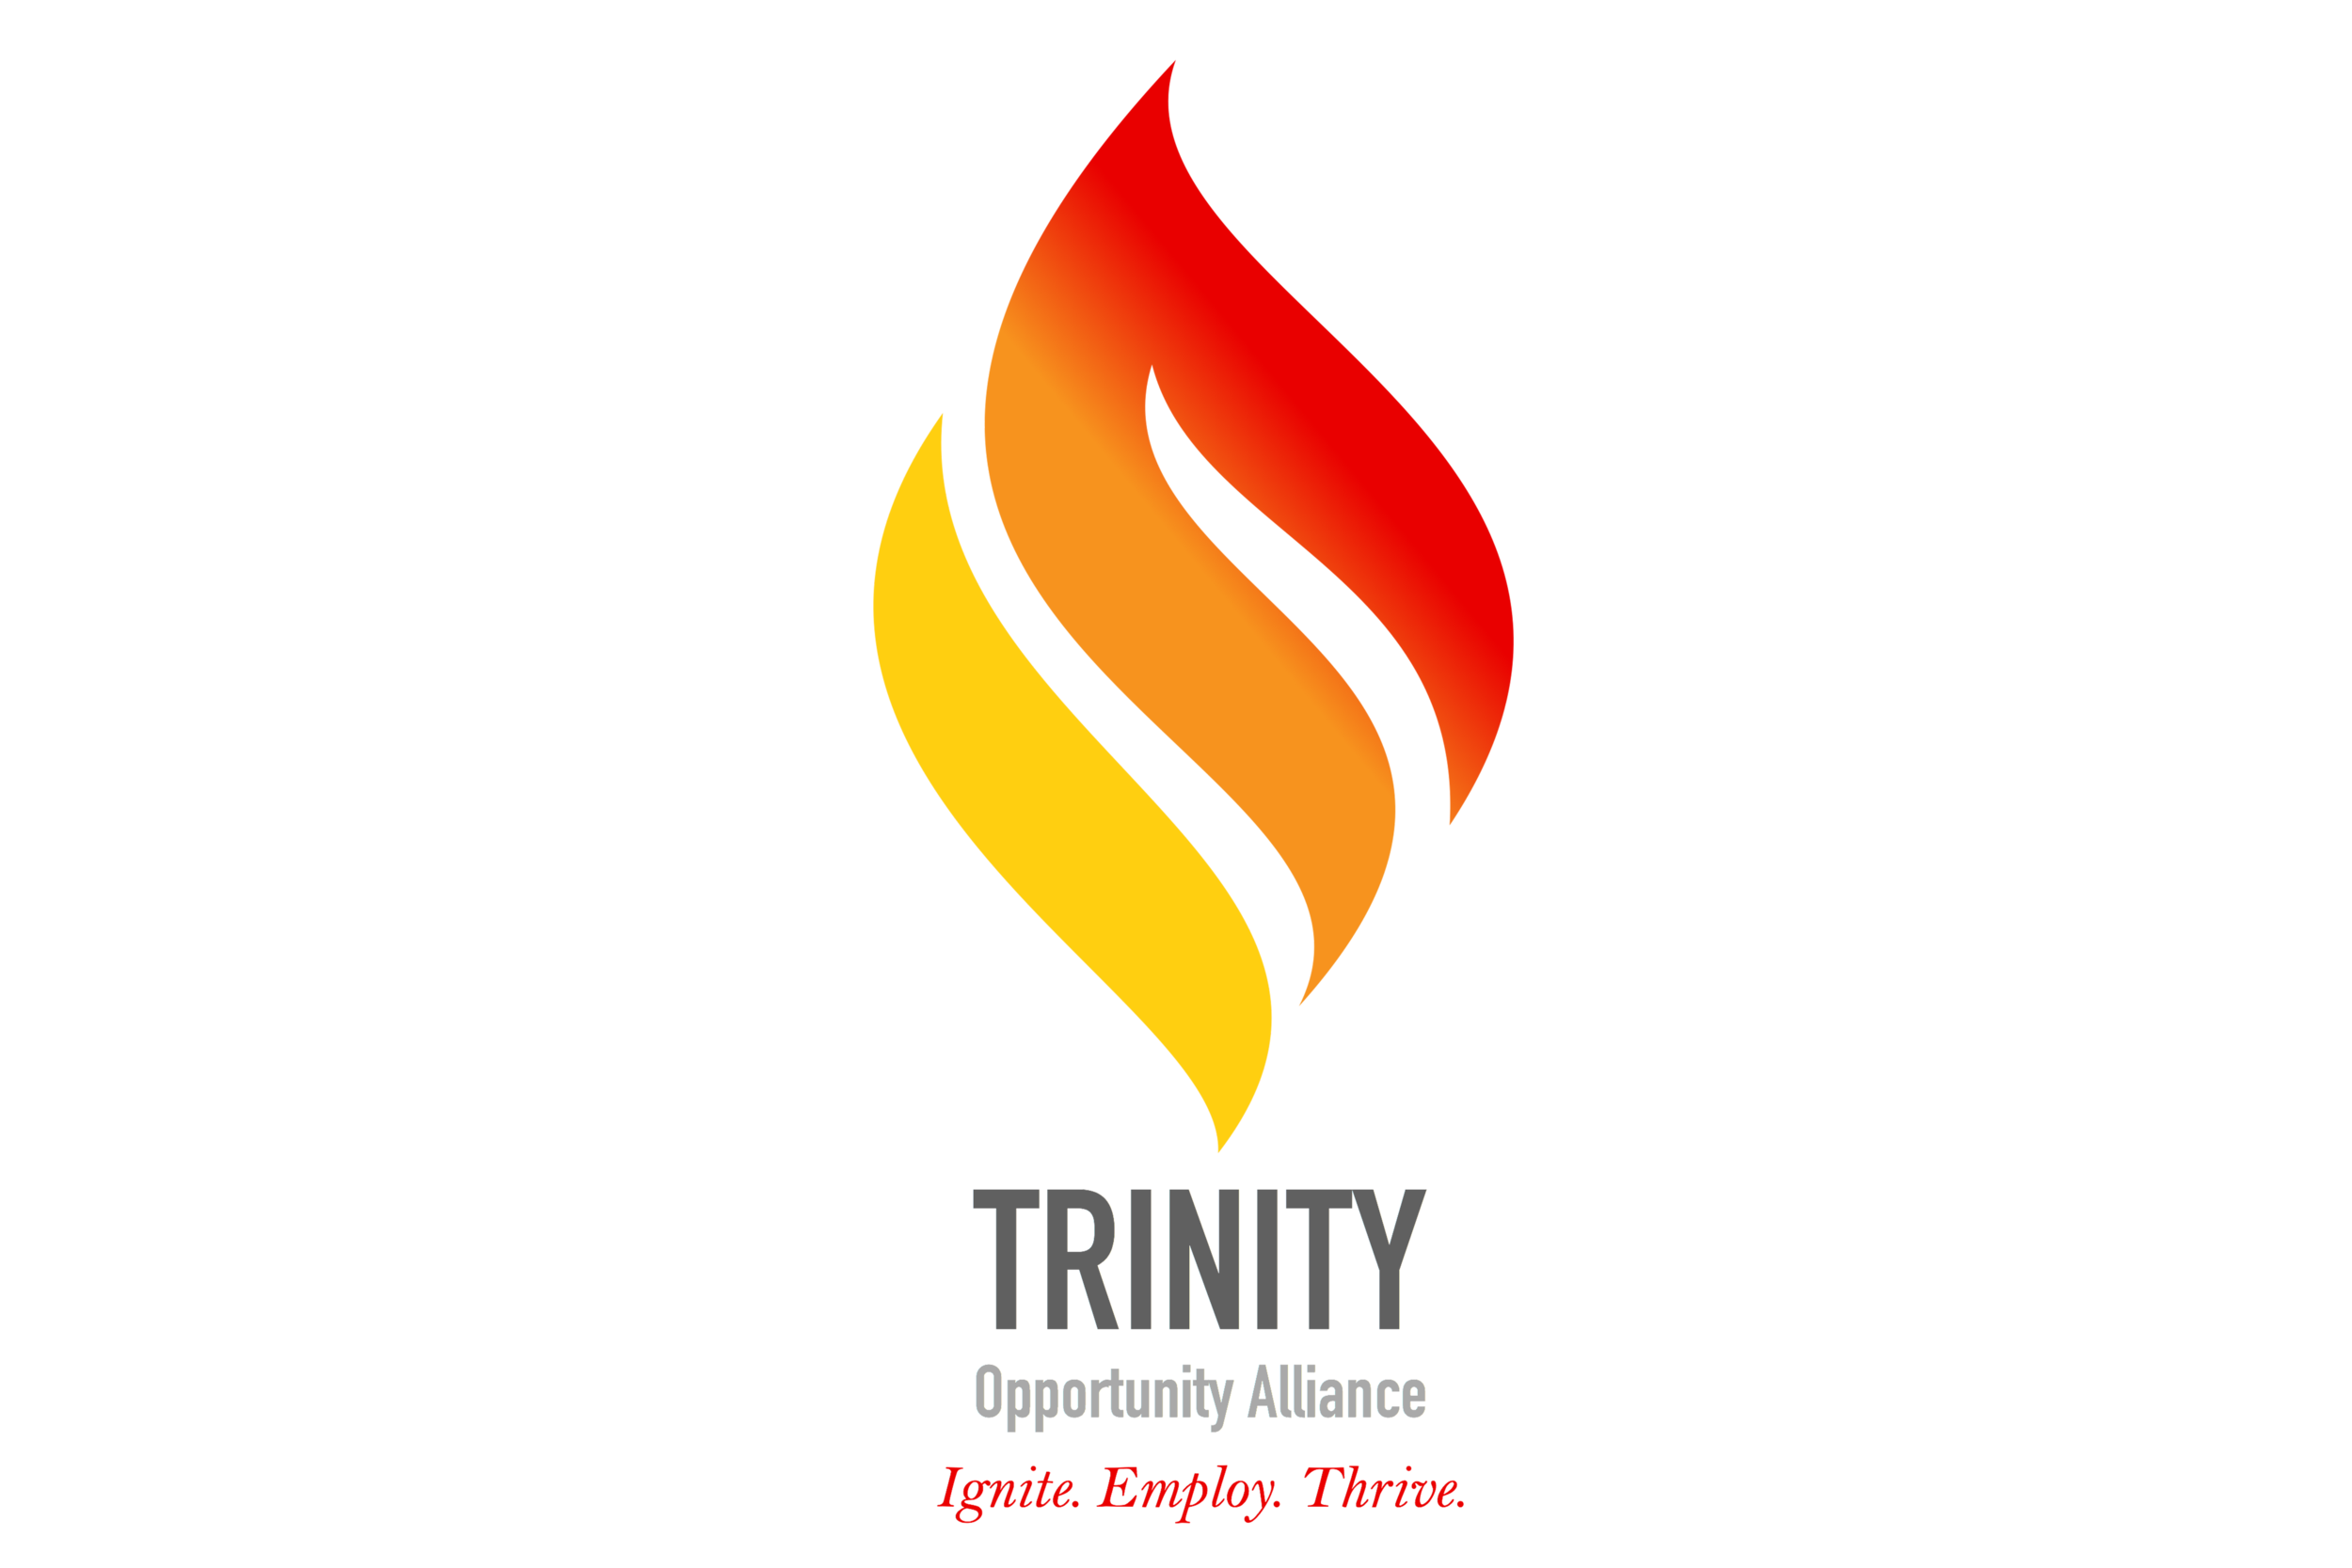 DONATE - Join in connecting these young people with opportunities for employment by supporting Trinity Opportunity Alliance.